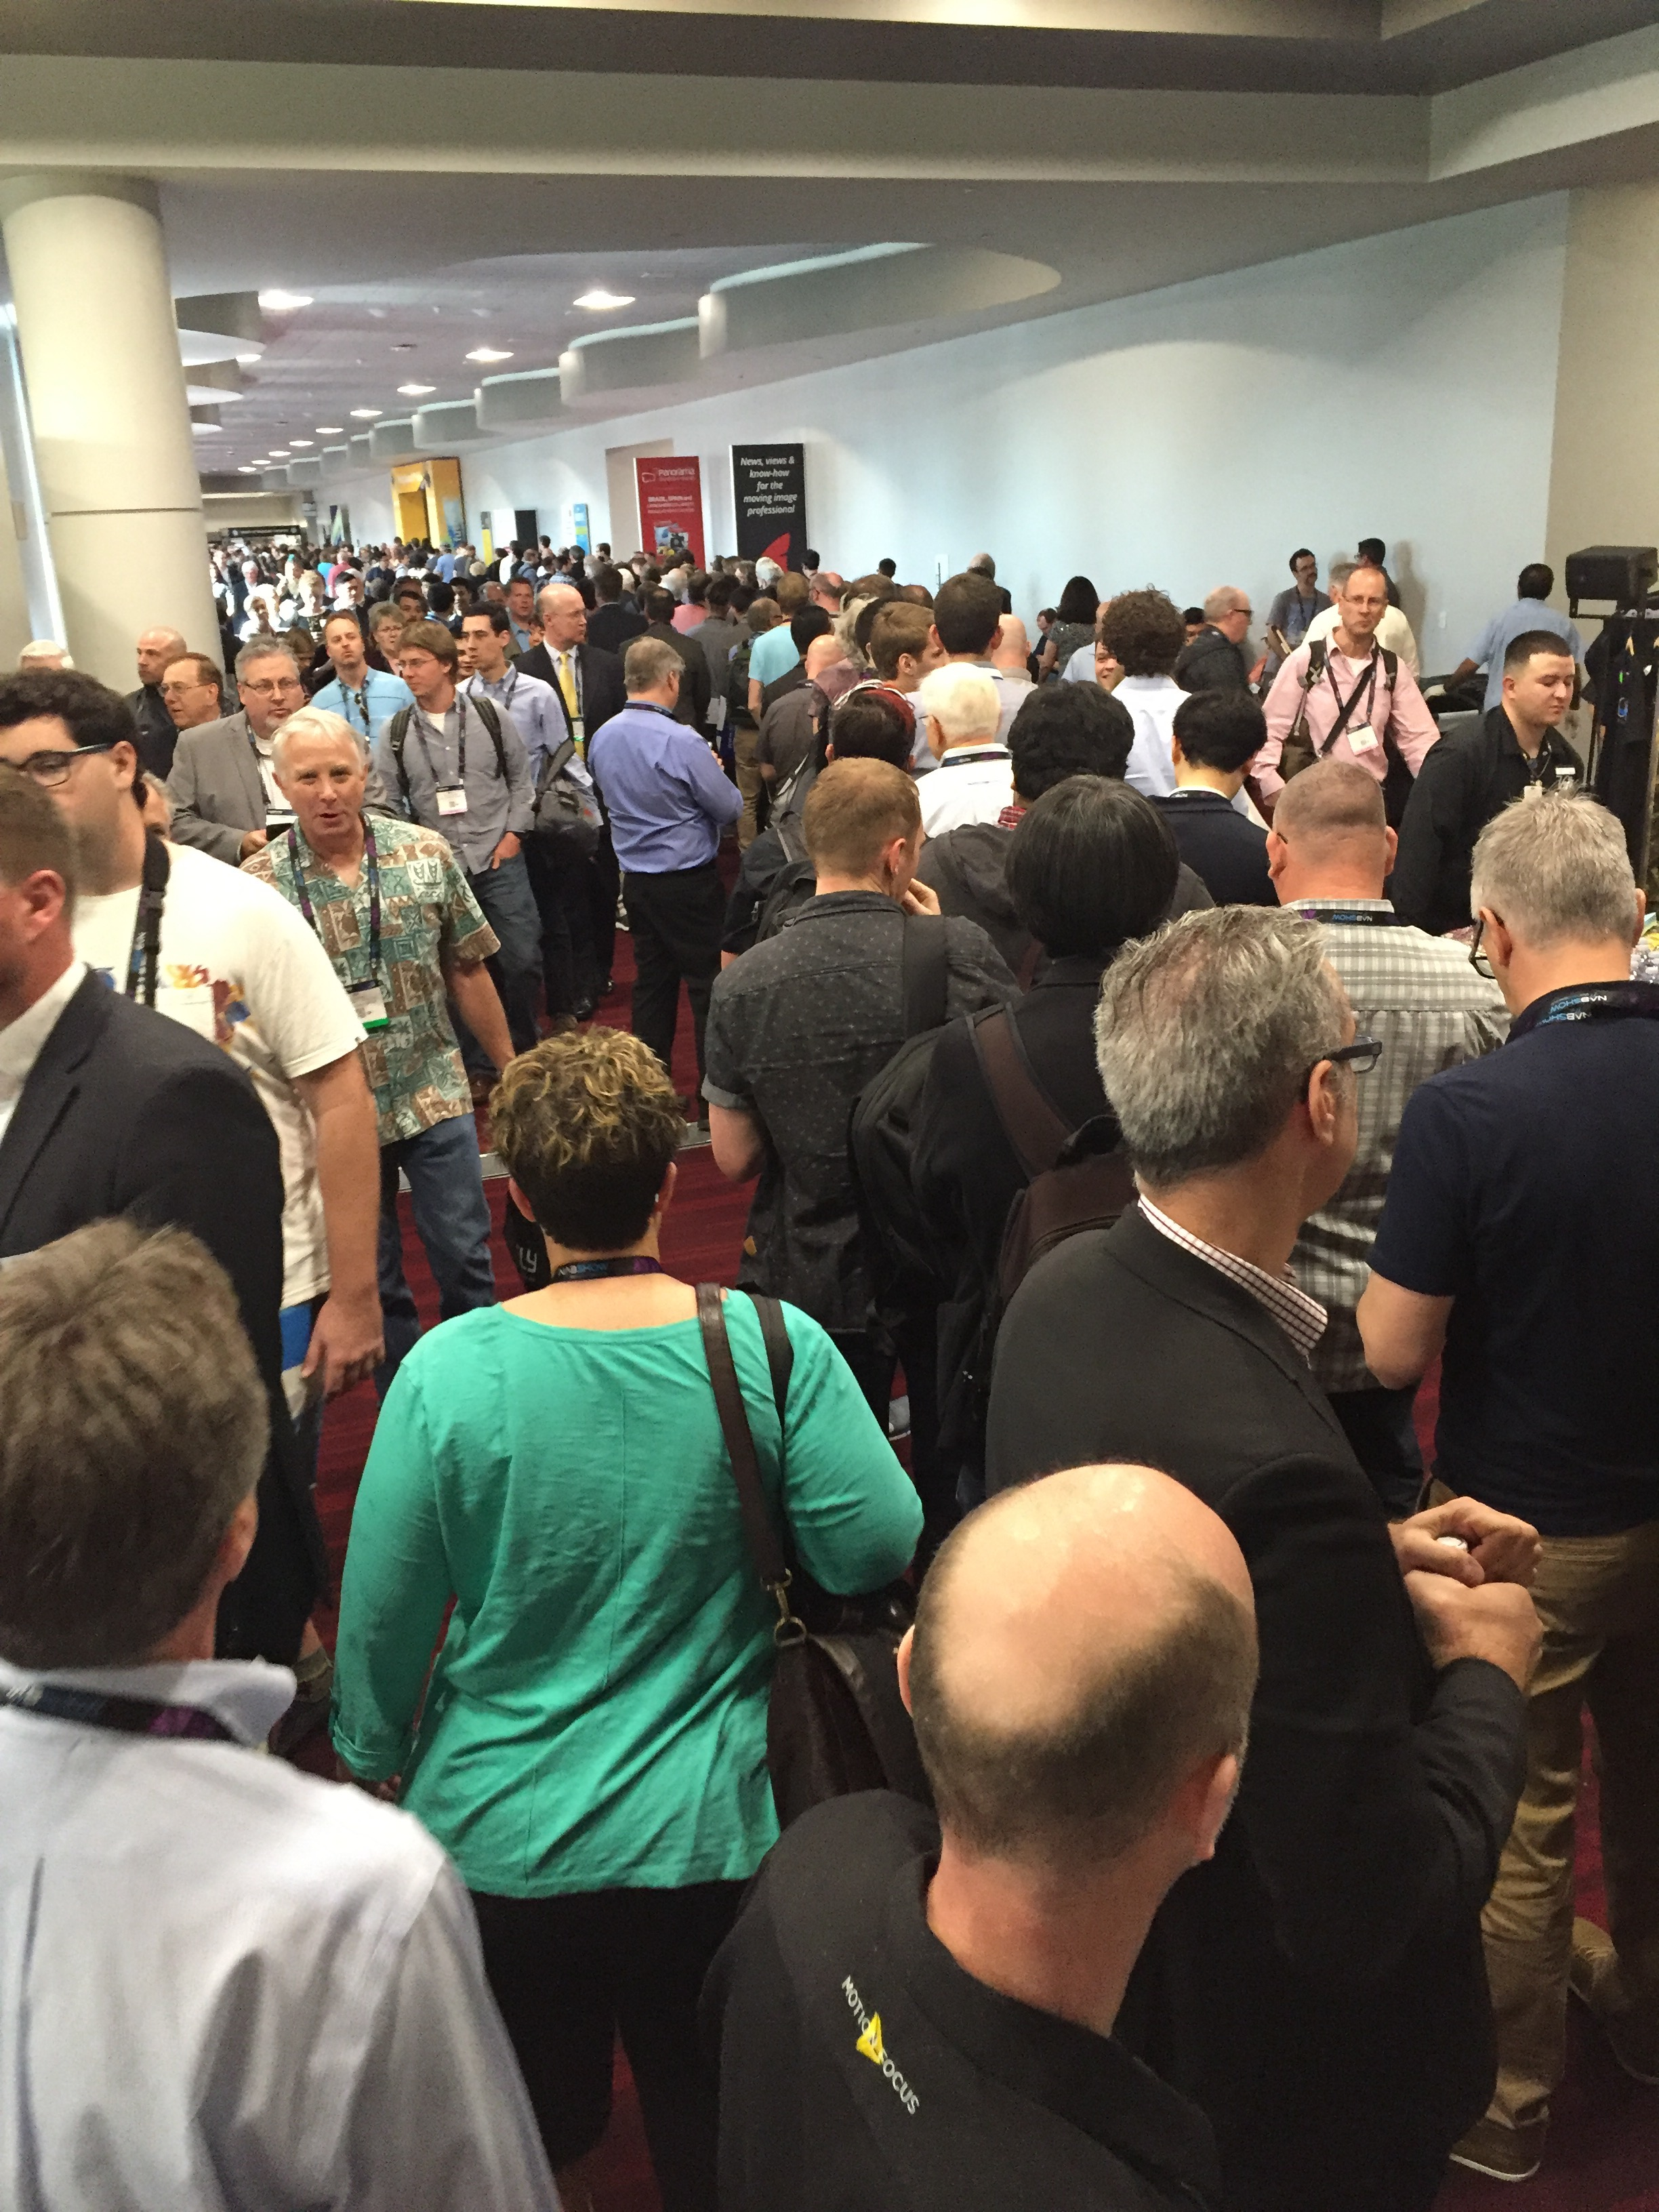 20 minutes before the Lytro session and this was the line in front of me.